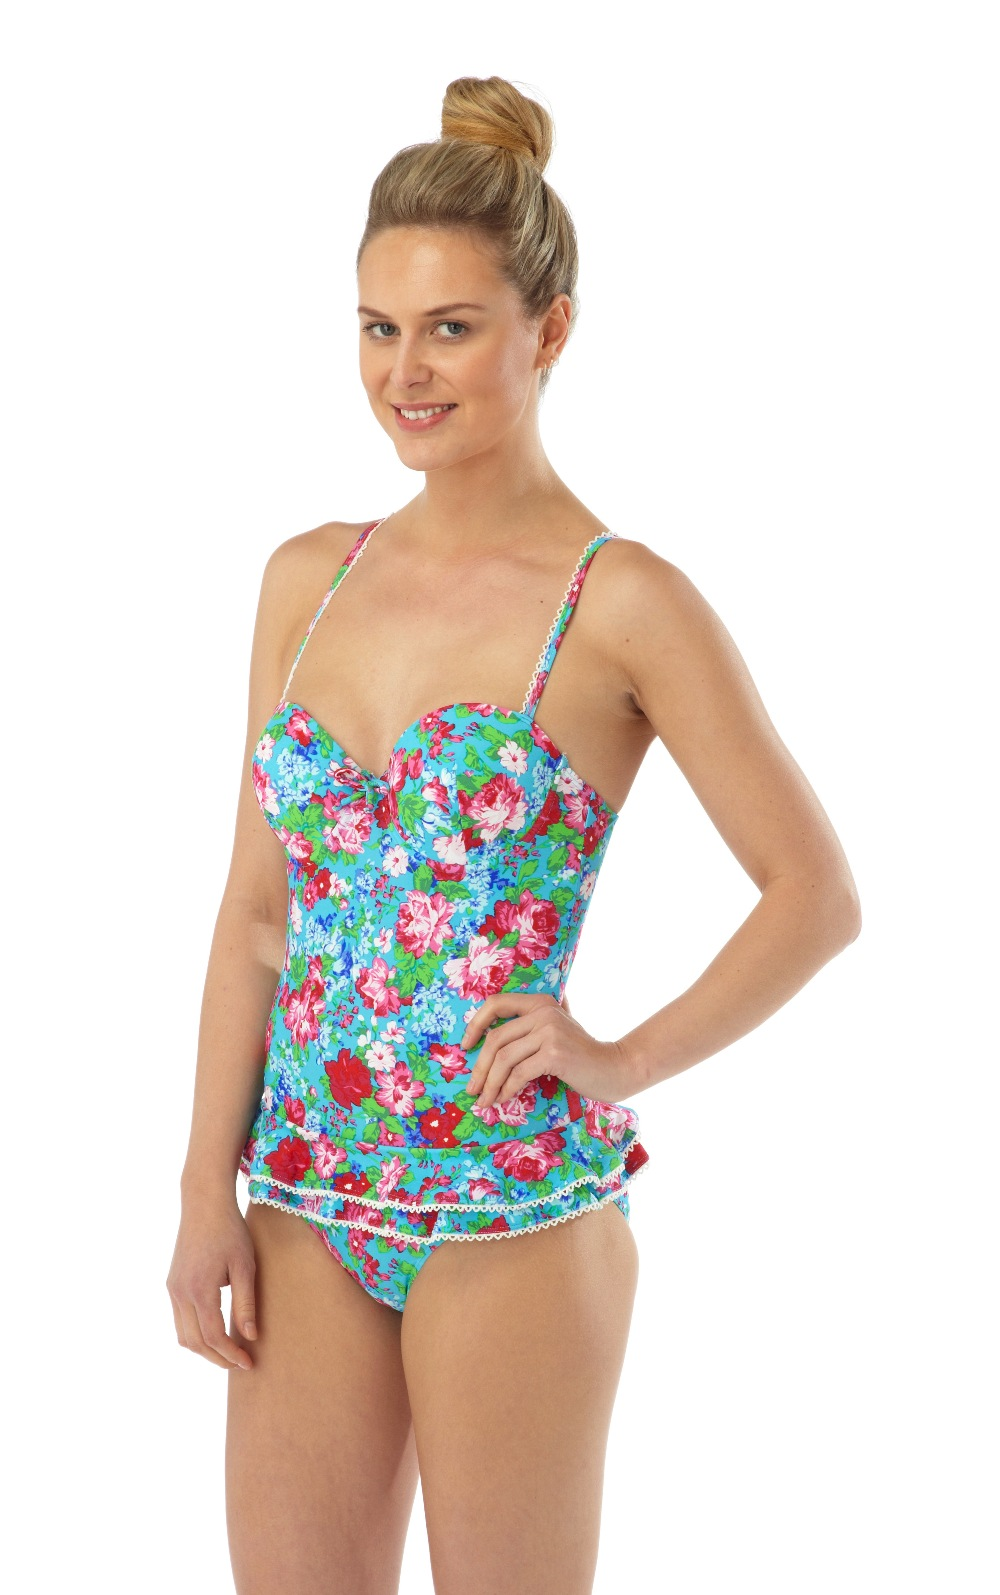 Women Tankini Sets with Boy Shorts Ladies Swimming Costumes Two Piece Swimsuits.